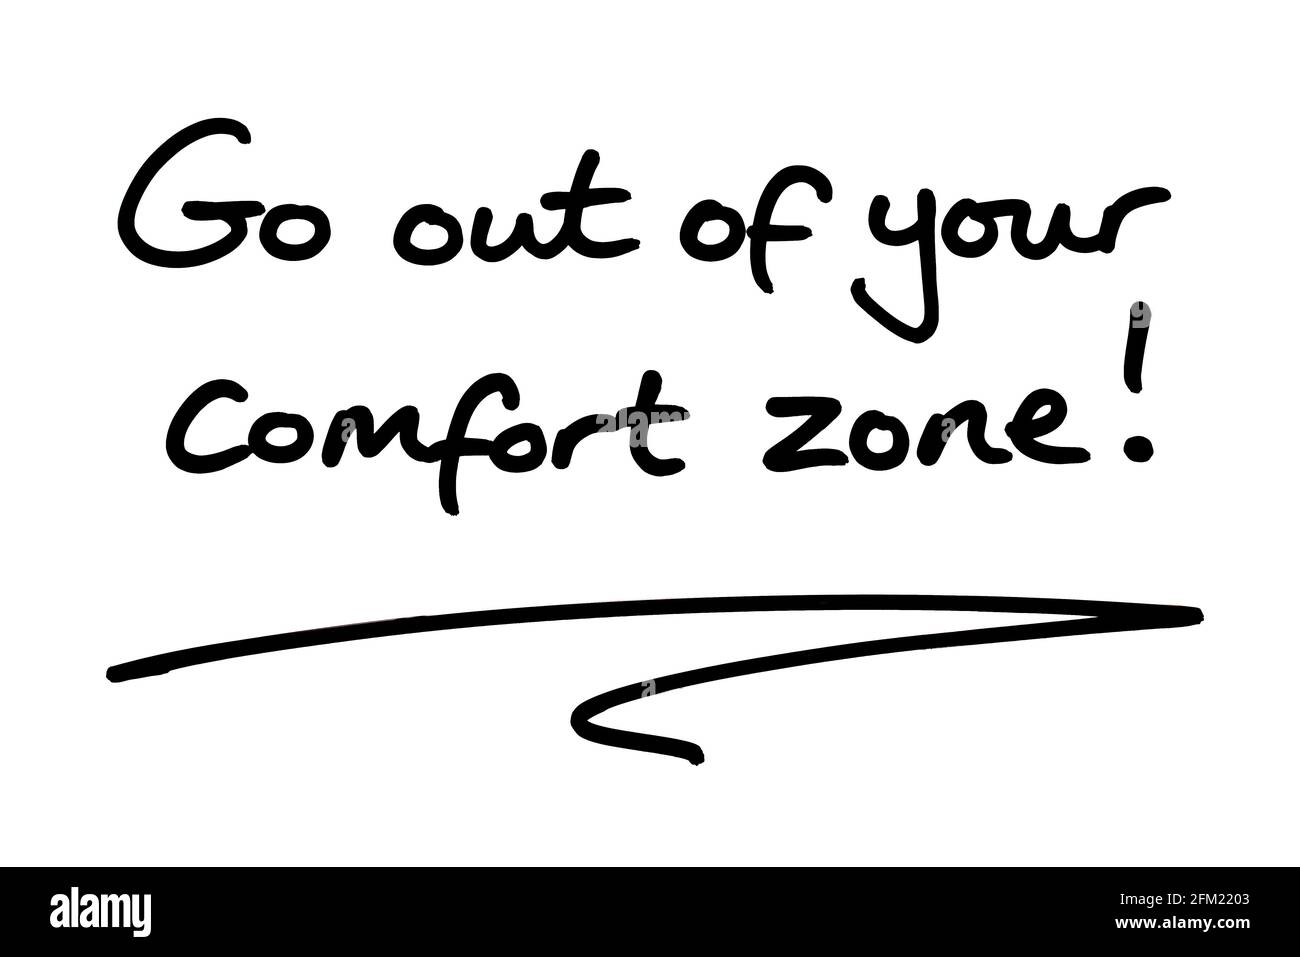 Go out of your comfort zone! handwritten on a white background. Stock Photo